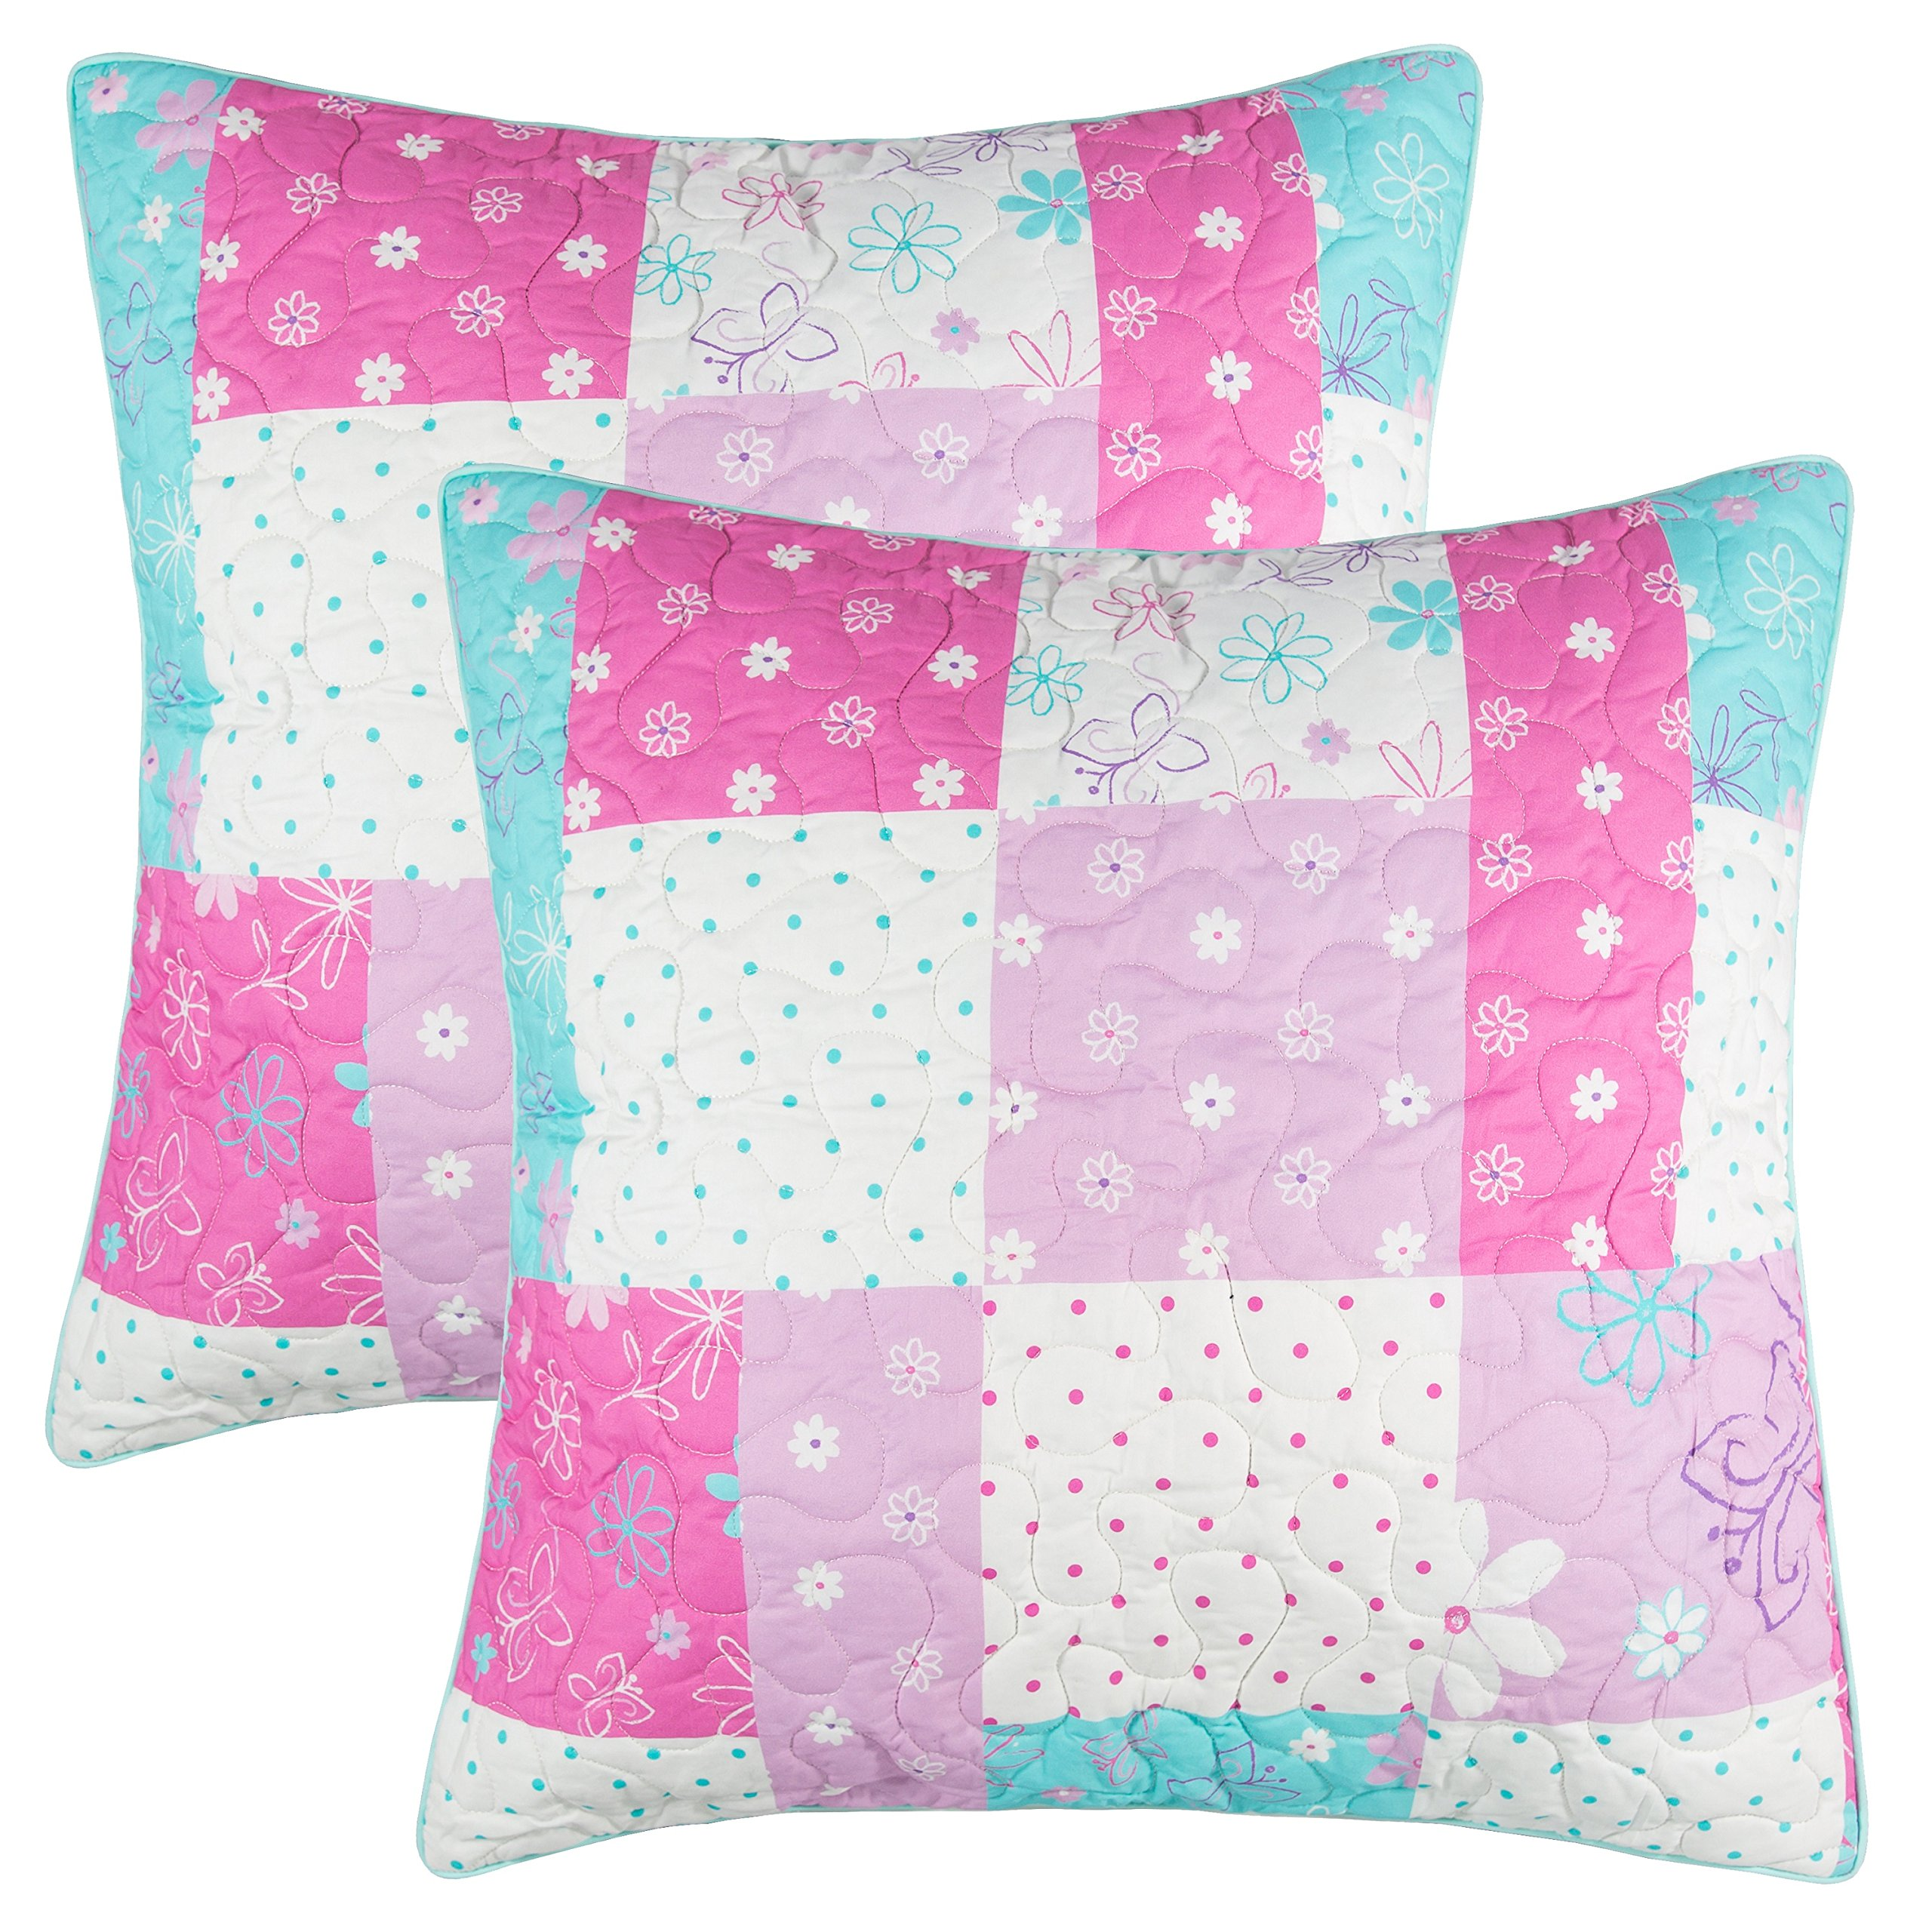 Lullaby Bedding 200EuroBFLY Butterfly Garden Cotton Printed Euro Shams, by Lullaby Bedding